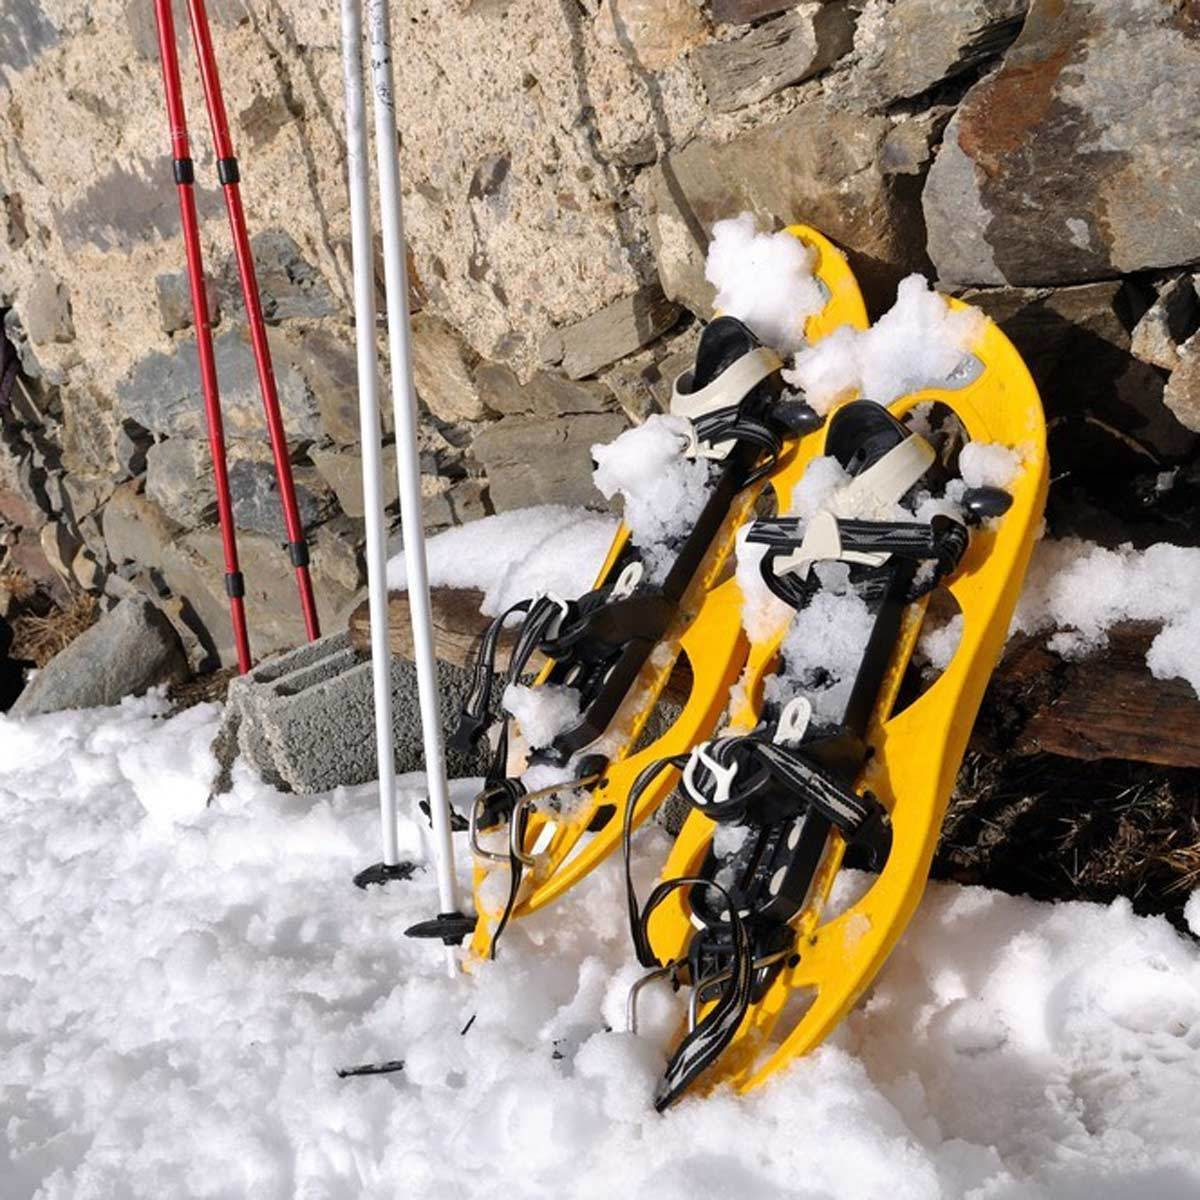 15 Tips For Storing Your Winter Sports Gear The Family